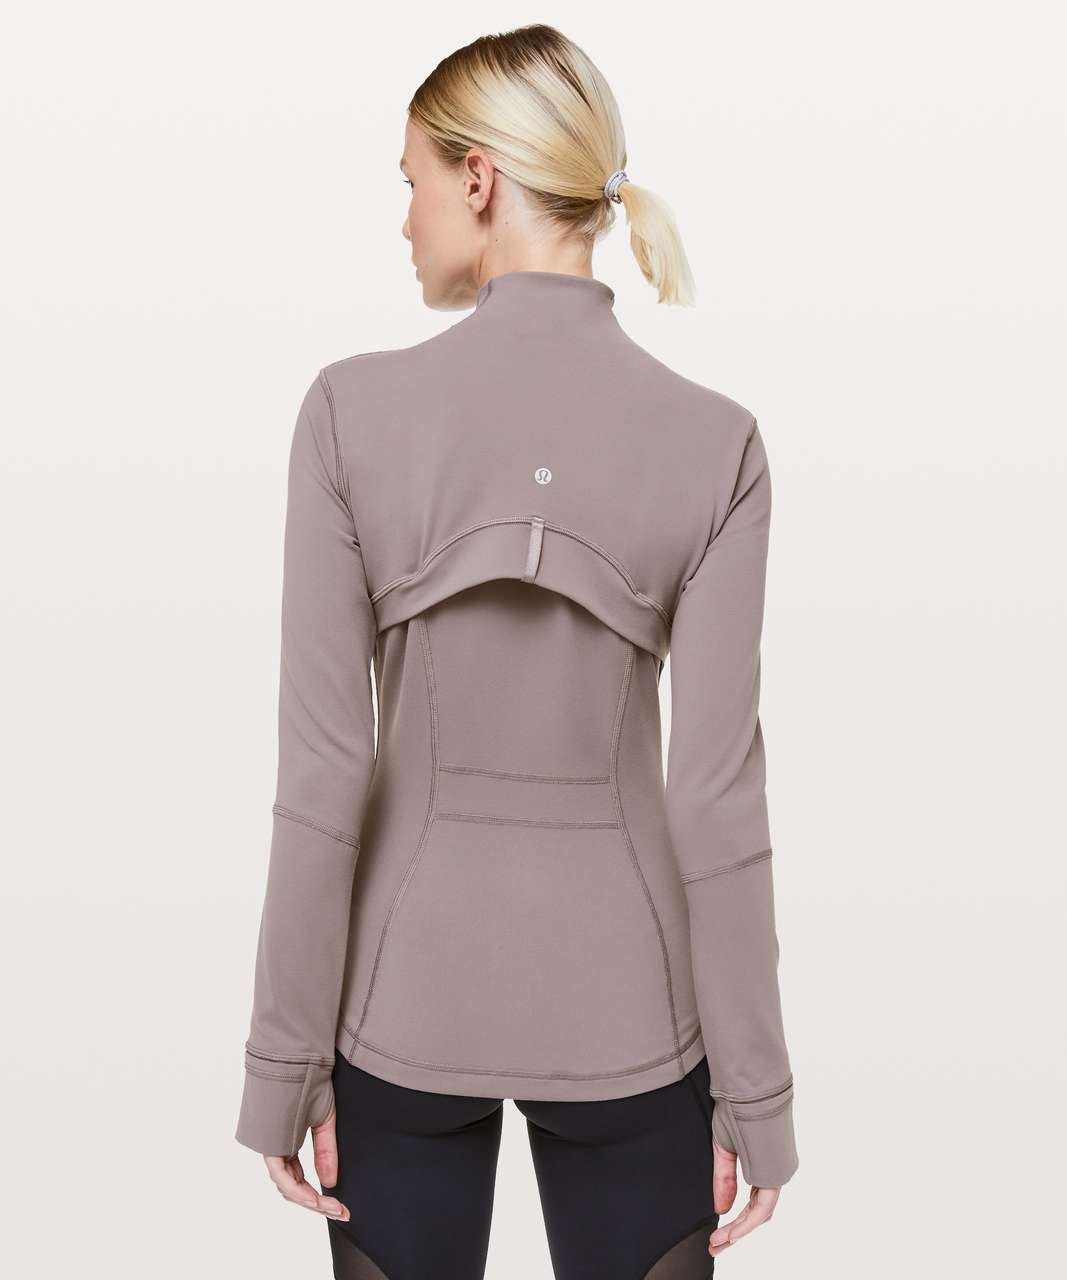 Lululemon Define Jacket - Lunar Rock